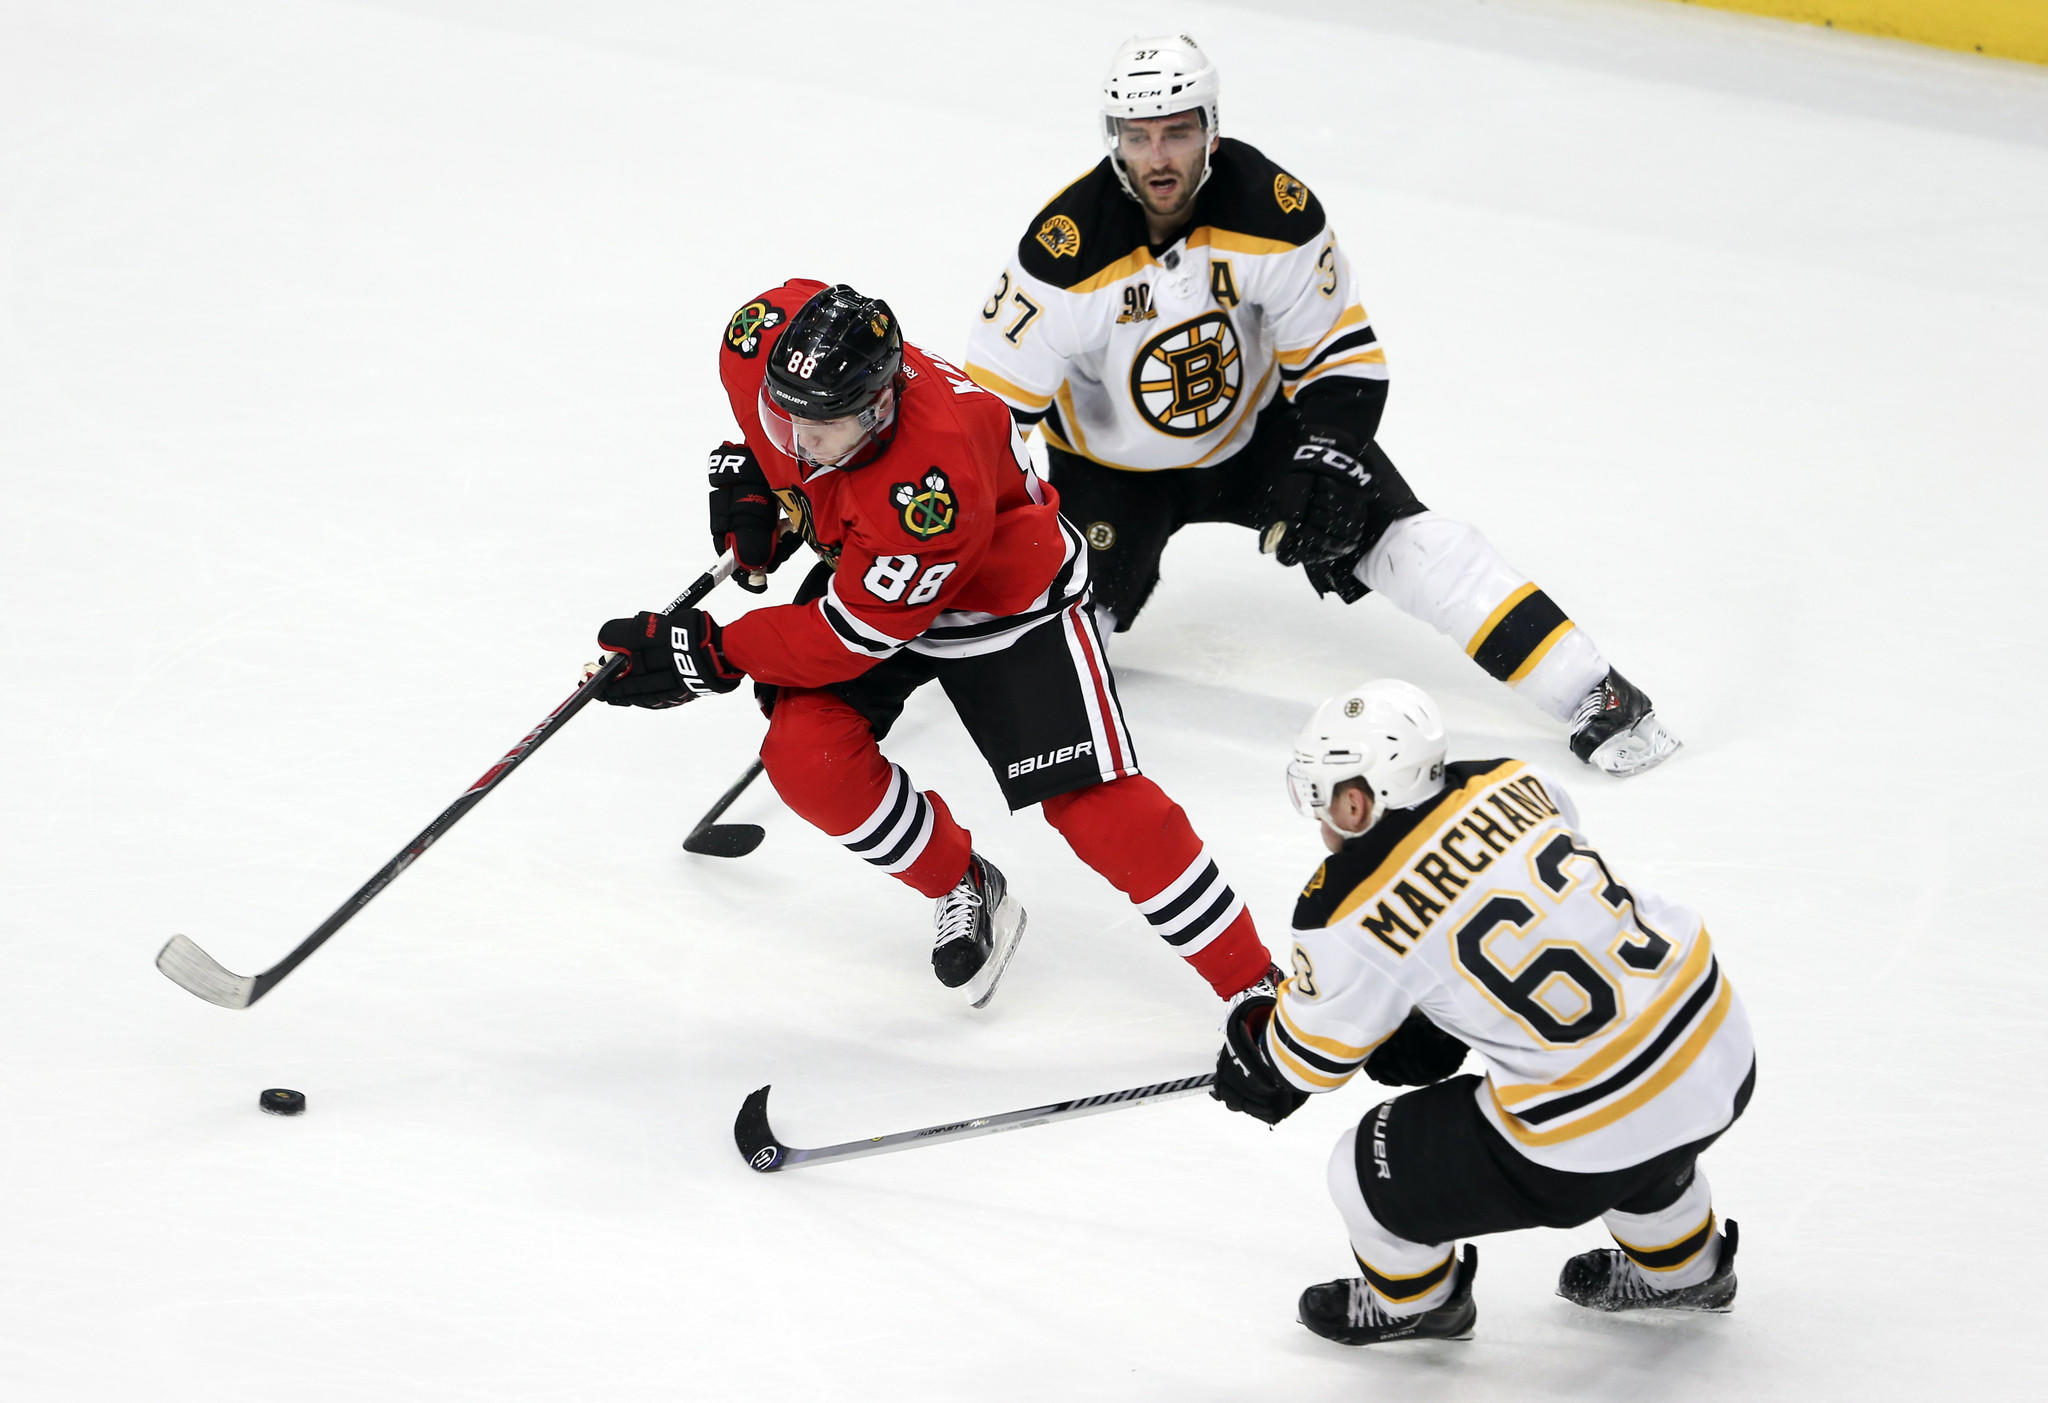 Chicago Blackhawks right wing Patrick Kane (88), maneuvers between Boston Bruins center Patrice Bergeron (37), and Boston Bruins left wing Brad Marchand (63), during the overtime period of their game at the United Center.